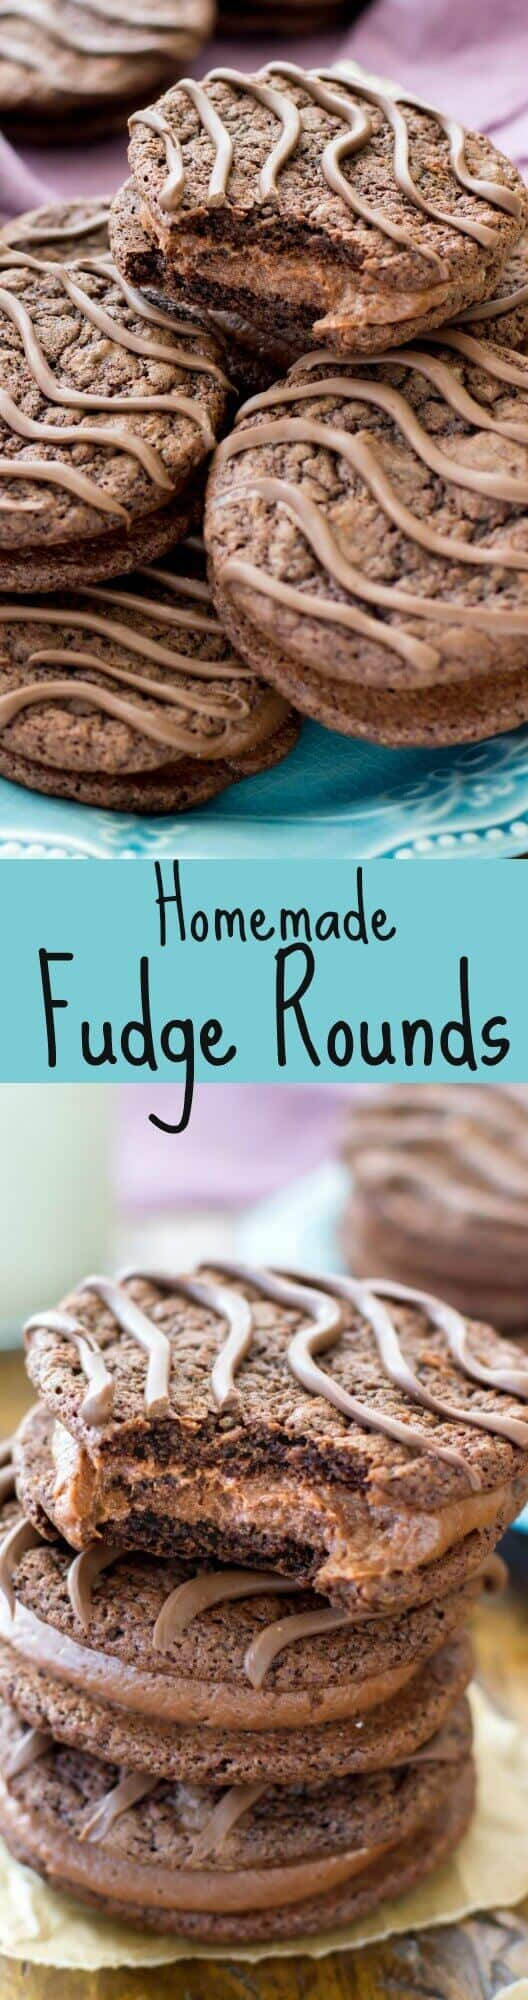 Chocolaty Homemade Fudge Rounds!